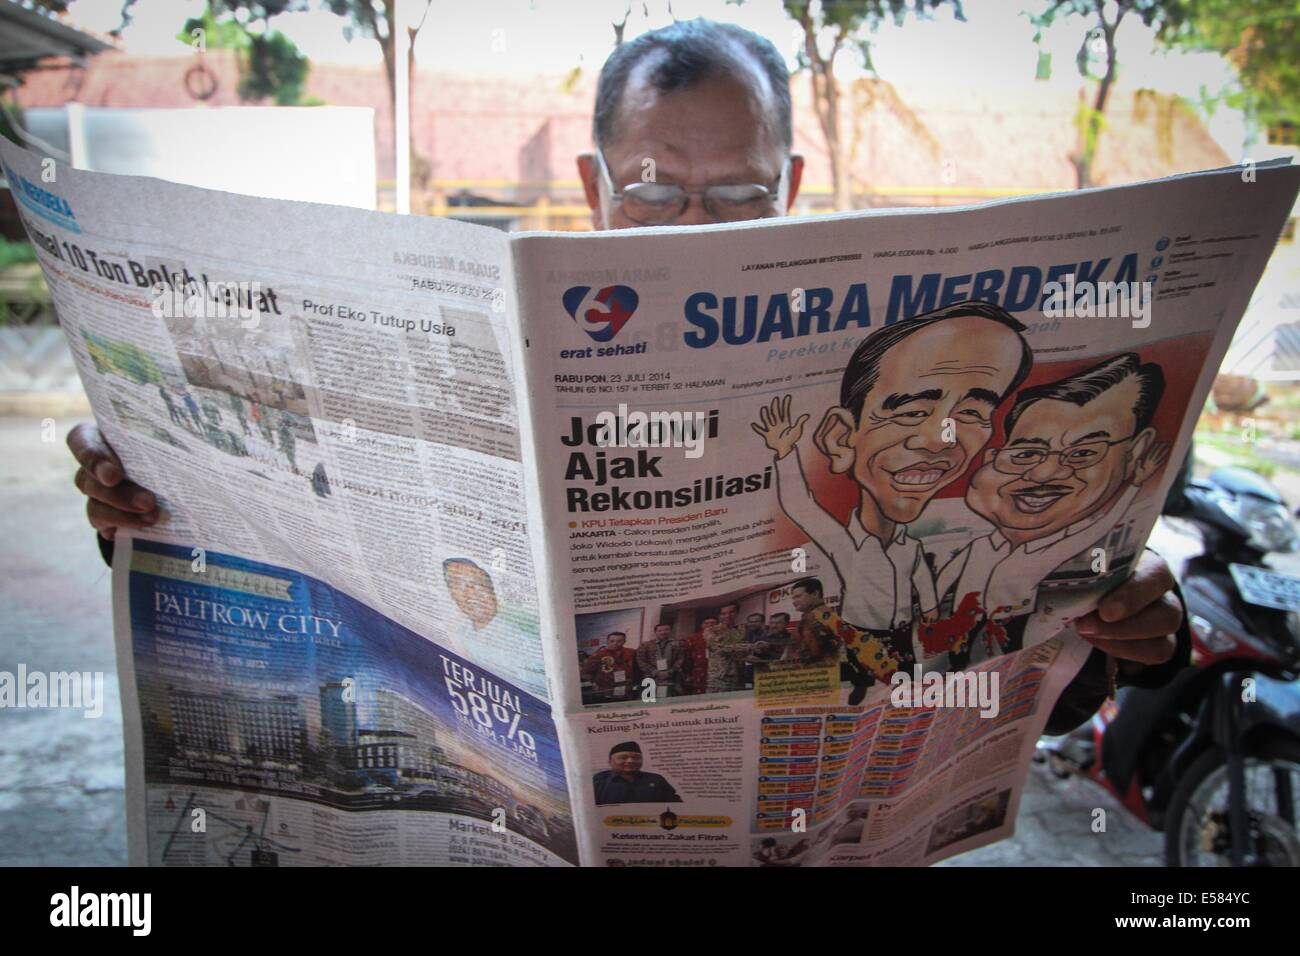 Semarang, Central Java, Indonesia. 23rd July, 2014.  A man reads a newspaper carrying the front page headline on - Stock Image